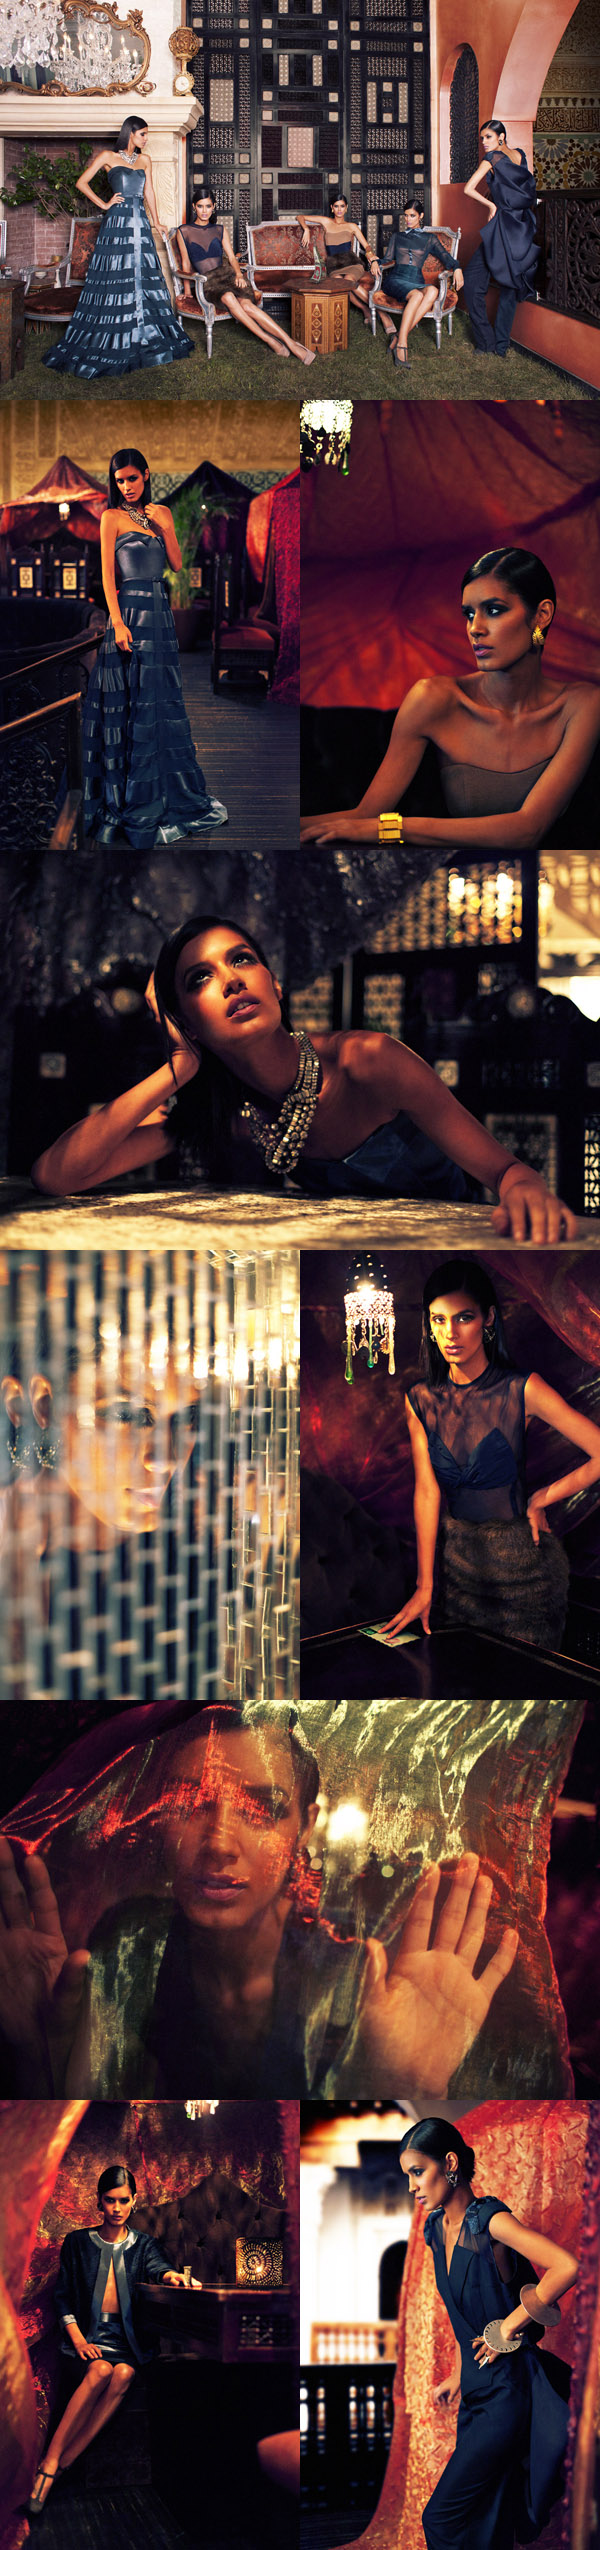 Clothing and styling by Celestino Dec 29, 2011 Morocco Girl (Jaslene Gonzalez - ANTM)